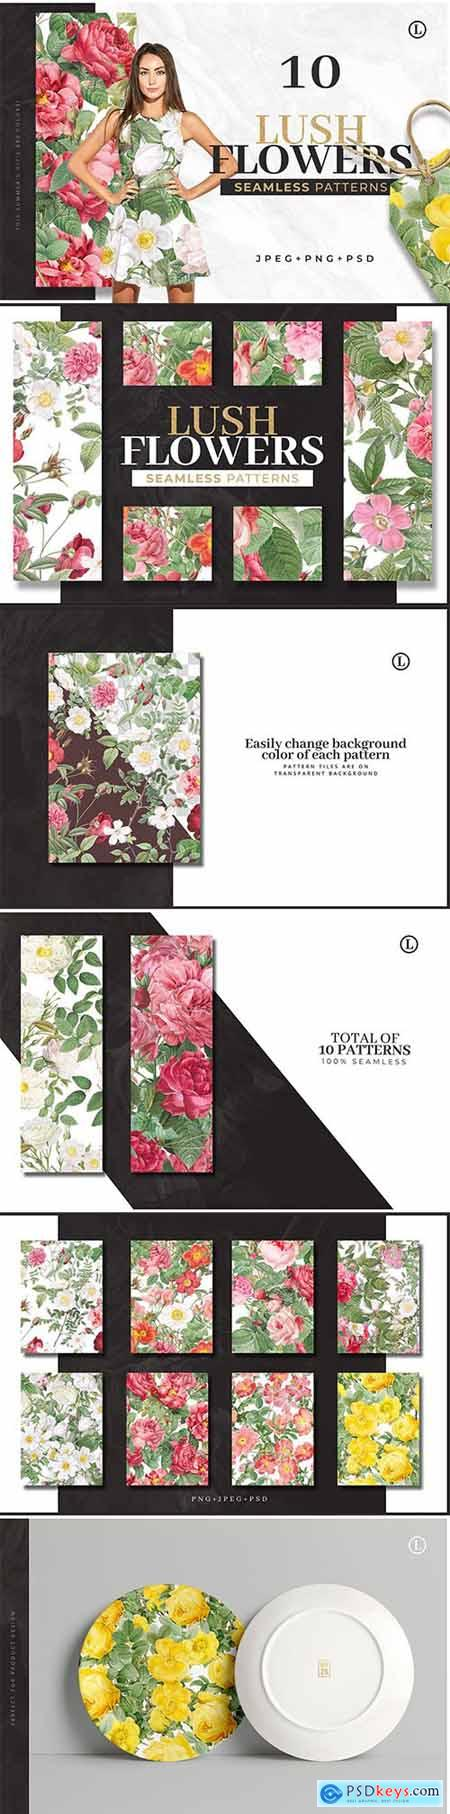 10 Colorful Flower Patterns » Free Download Photoshop Vector